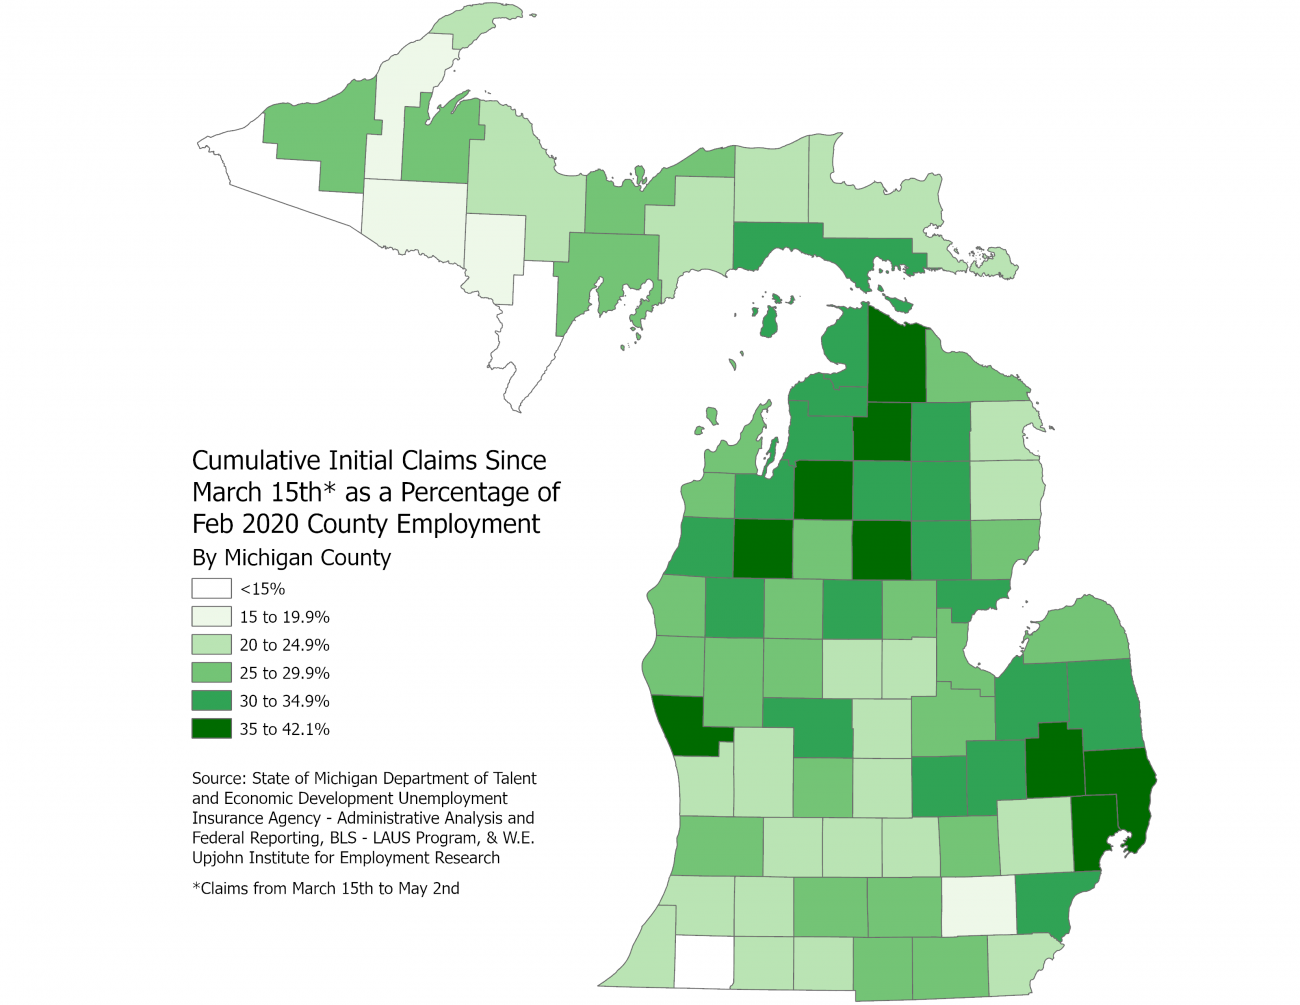 Michigan map of cumulative initial UI claims by county as share of employment